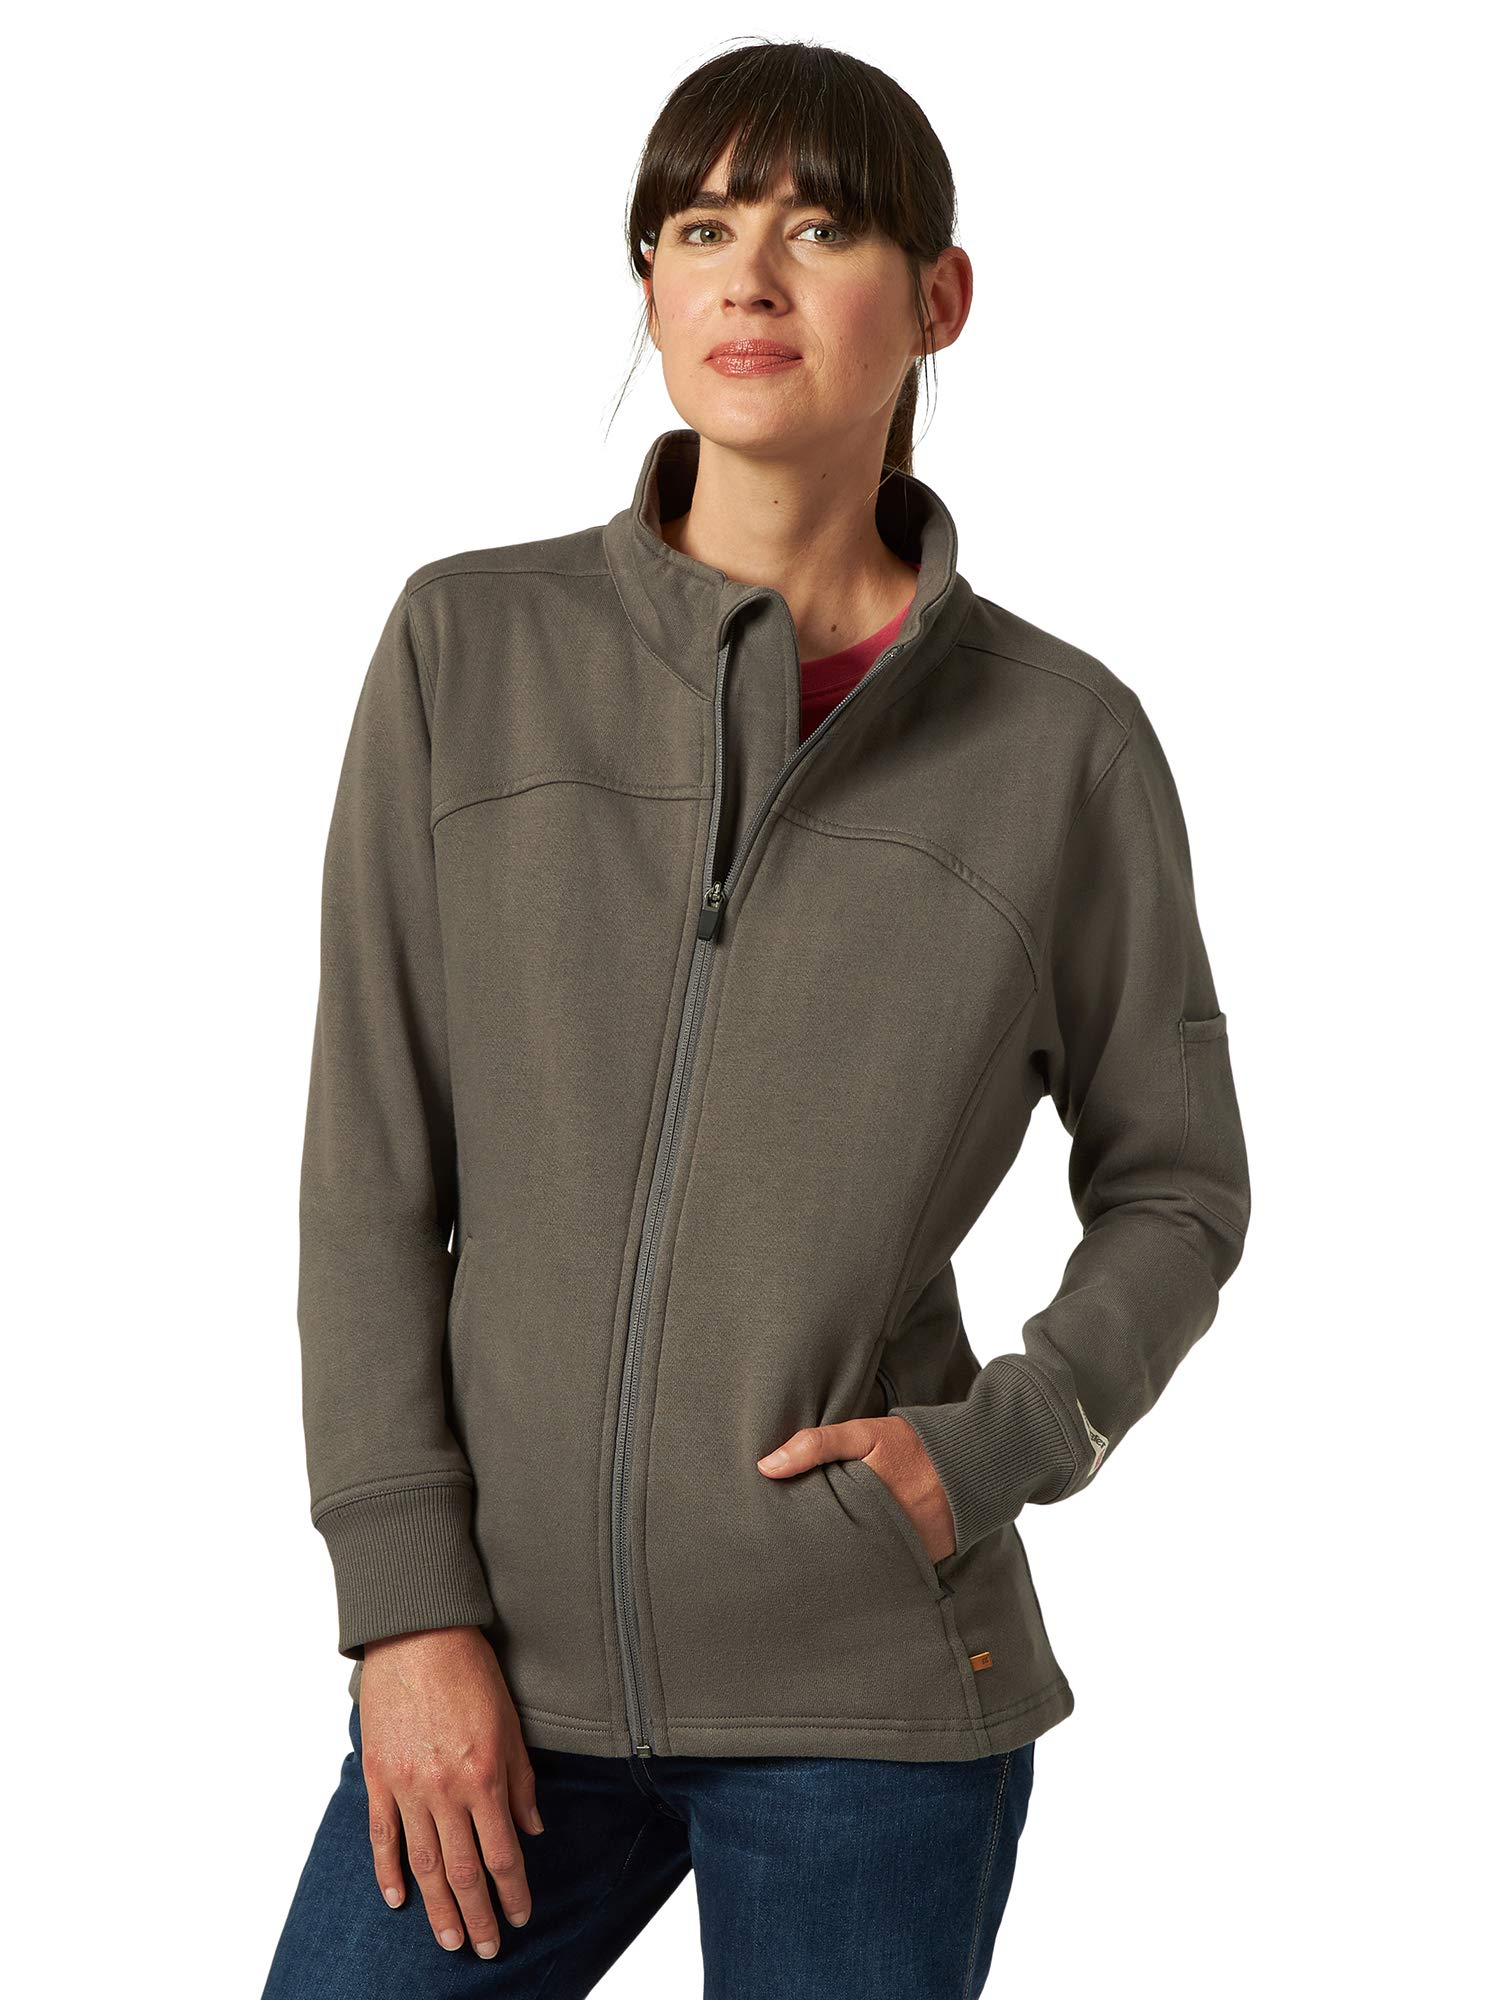 Wrangler Riggs Workwear Women's Wicking Work Jacket